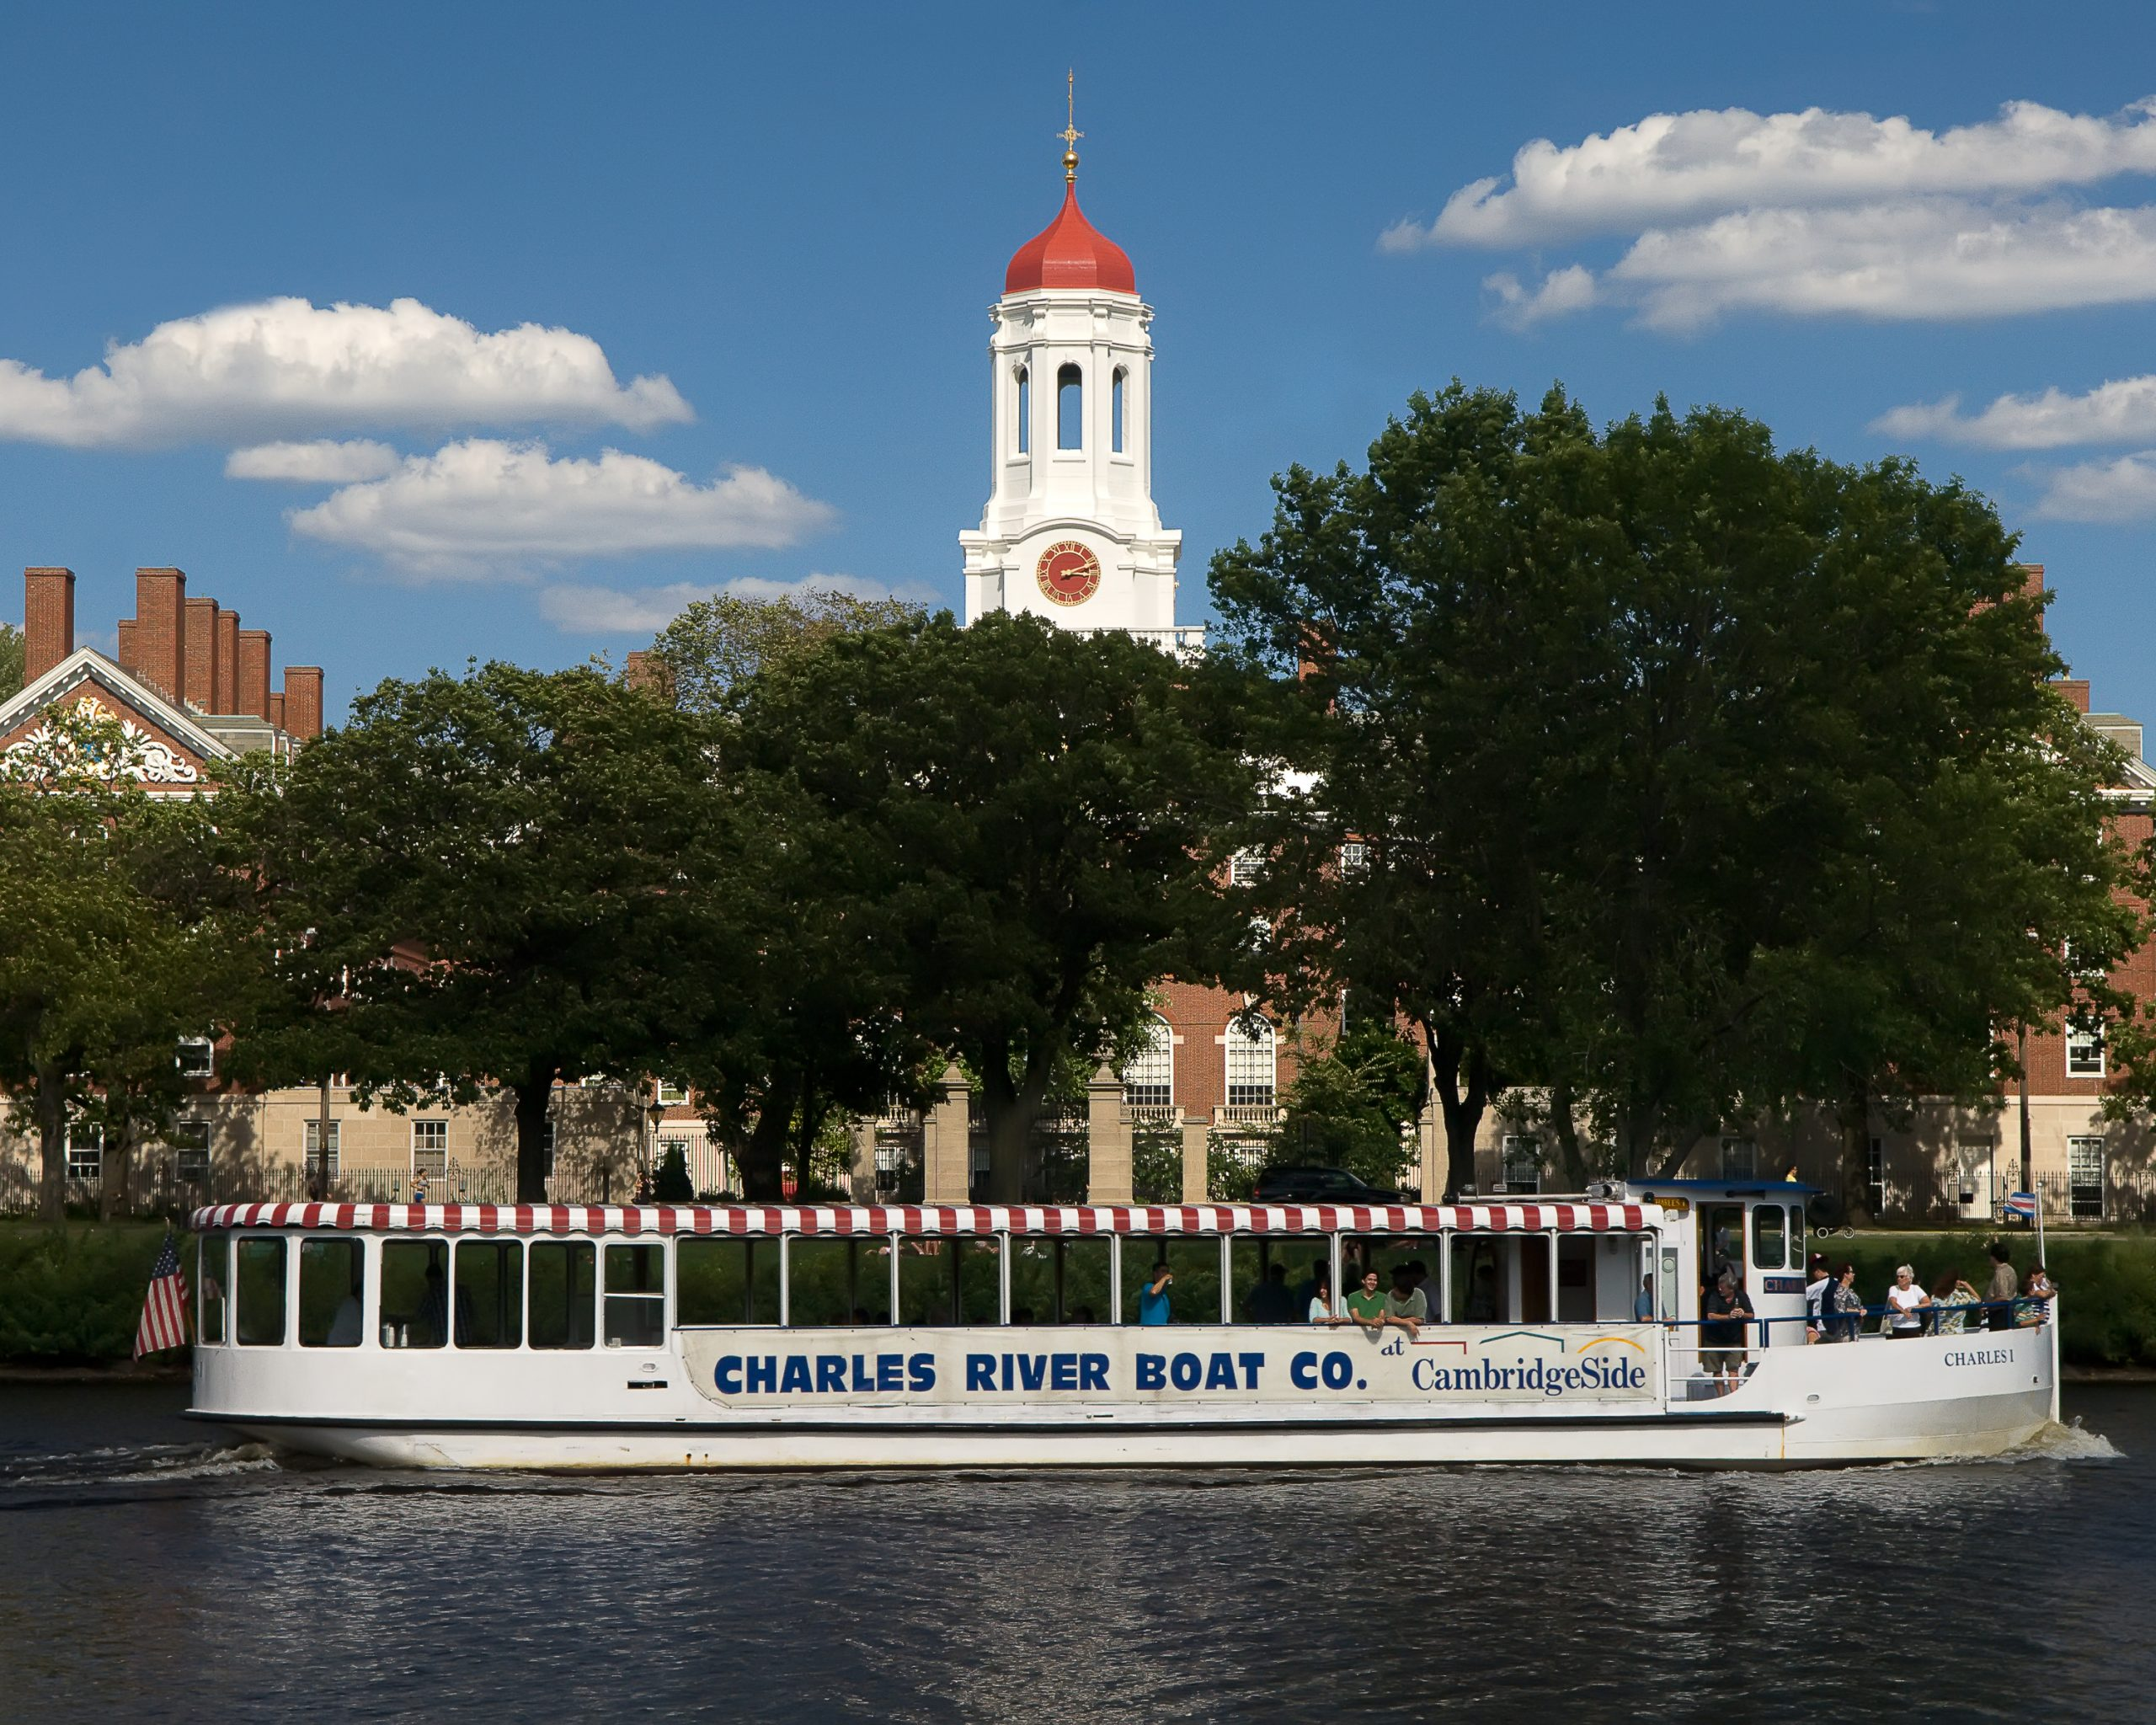 Charles River Boat Company passing the Dunster House.